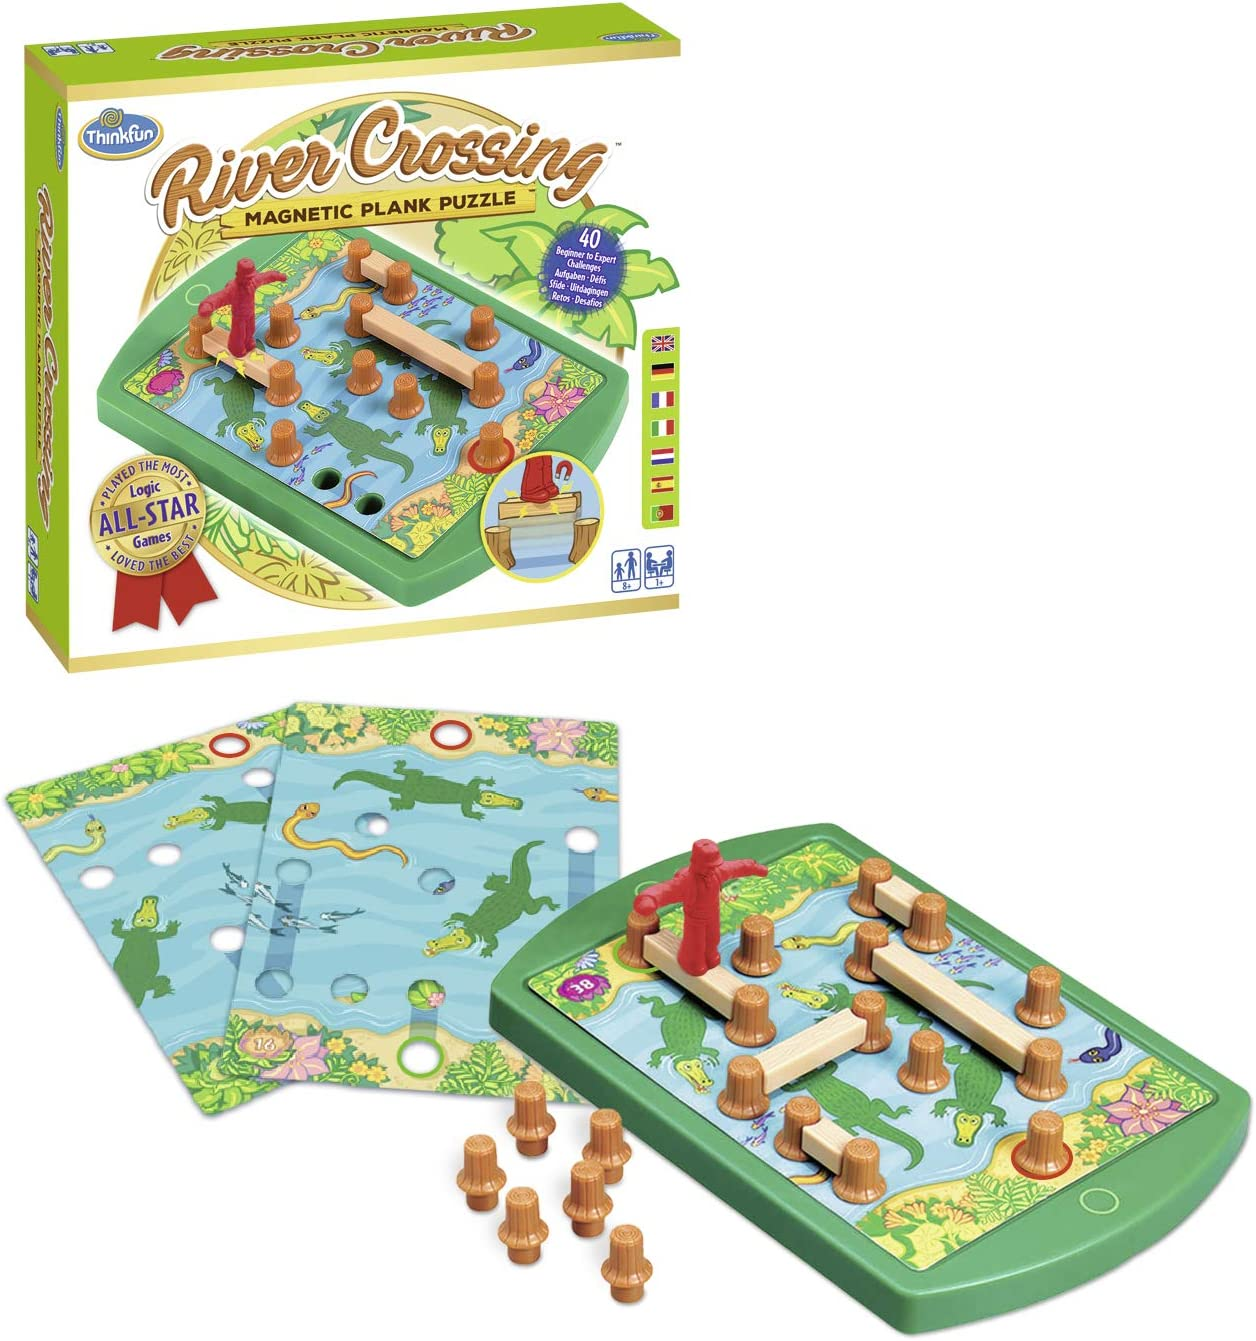 Ravensburger 76349 ThinkFun River Crossing: River Crossing® ThinkFun: Amazon.es: Juguetes y juegos